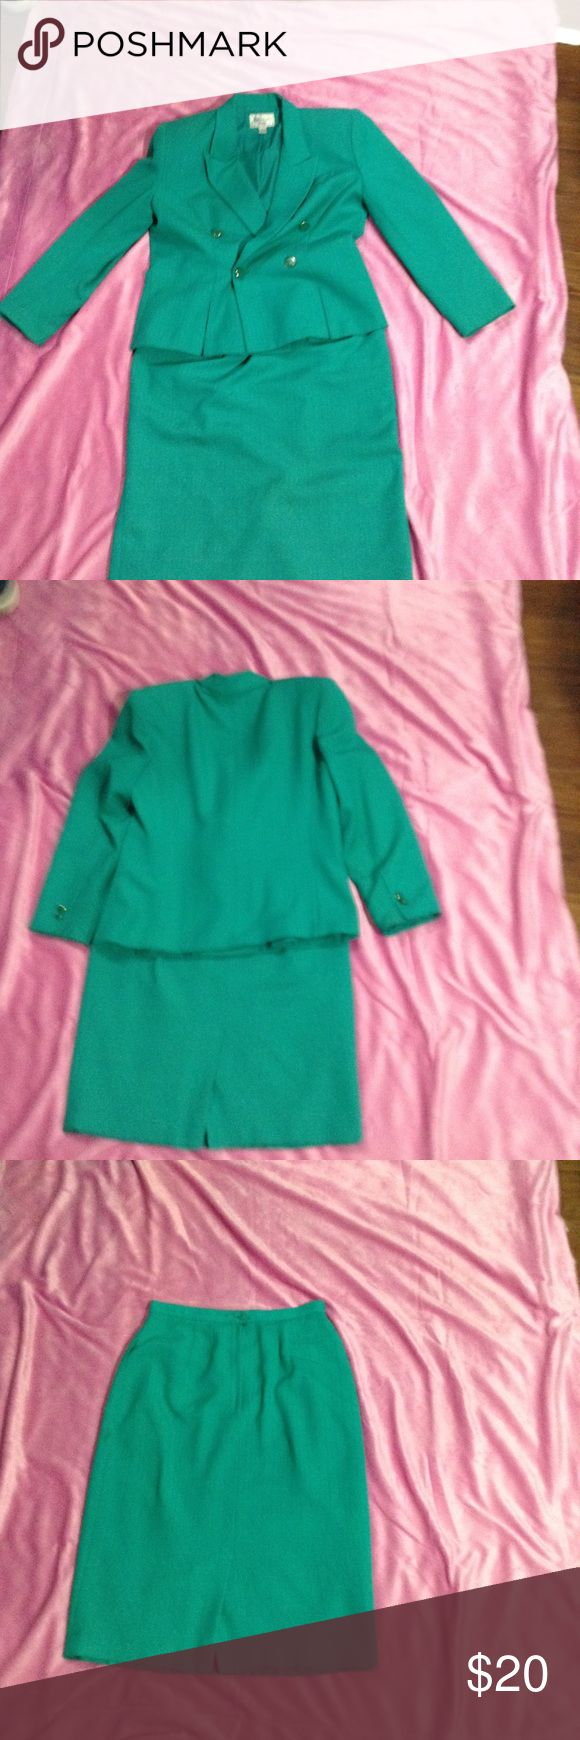 Christopher woman's petite outfit Good condition one botton is clip  Ned's fix & mix one Other